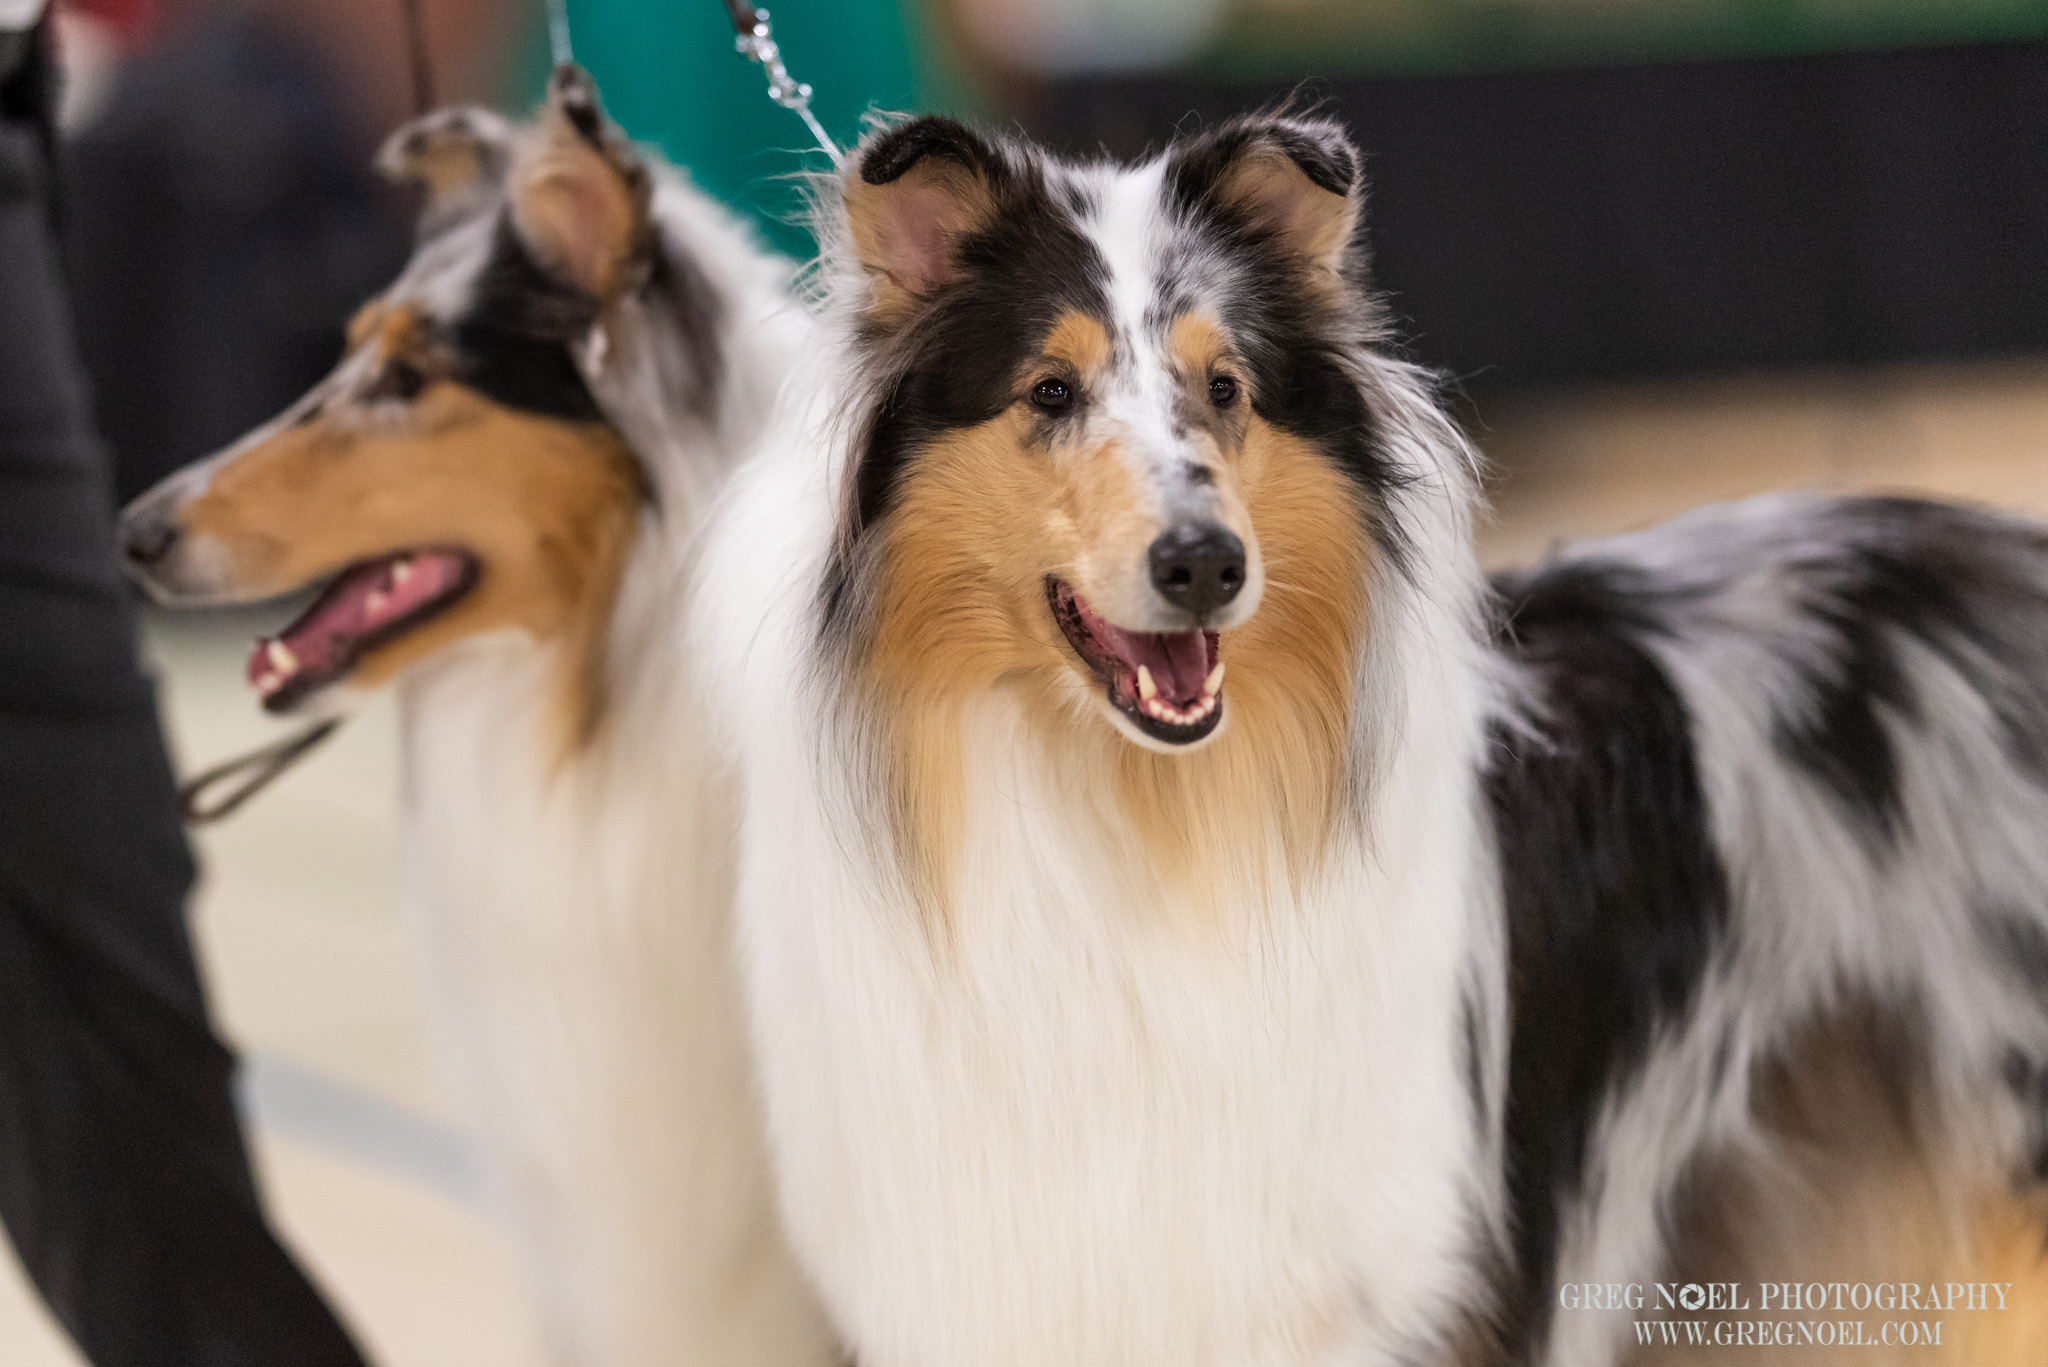 Newfoundland All Breed Kennel Club Dog ShowApril 2019 Candids and Ring Photos - Personal use digital downloads$10 each, 3 for $25Commercial Licence for breeders/businesses/advertising additional $60 per imagePrints also available